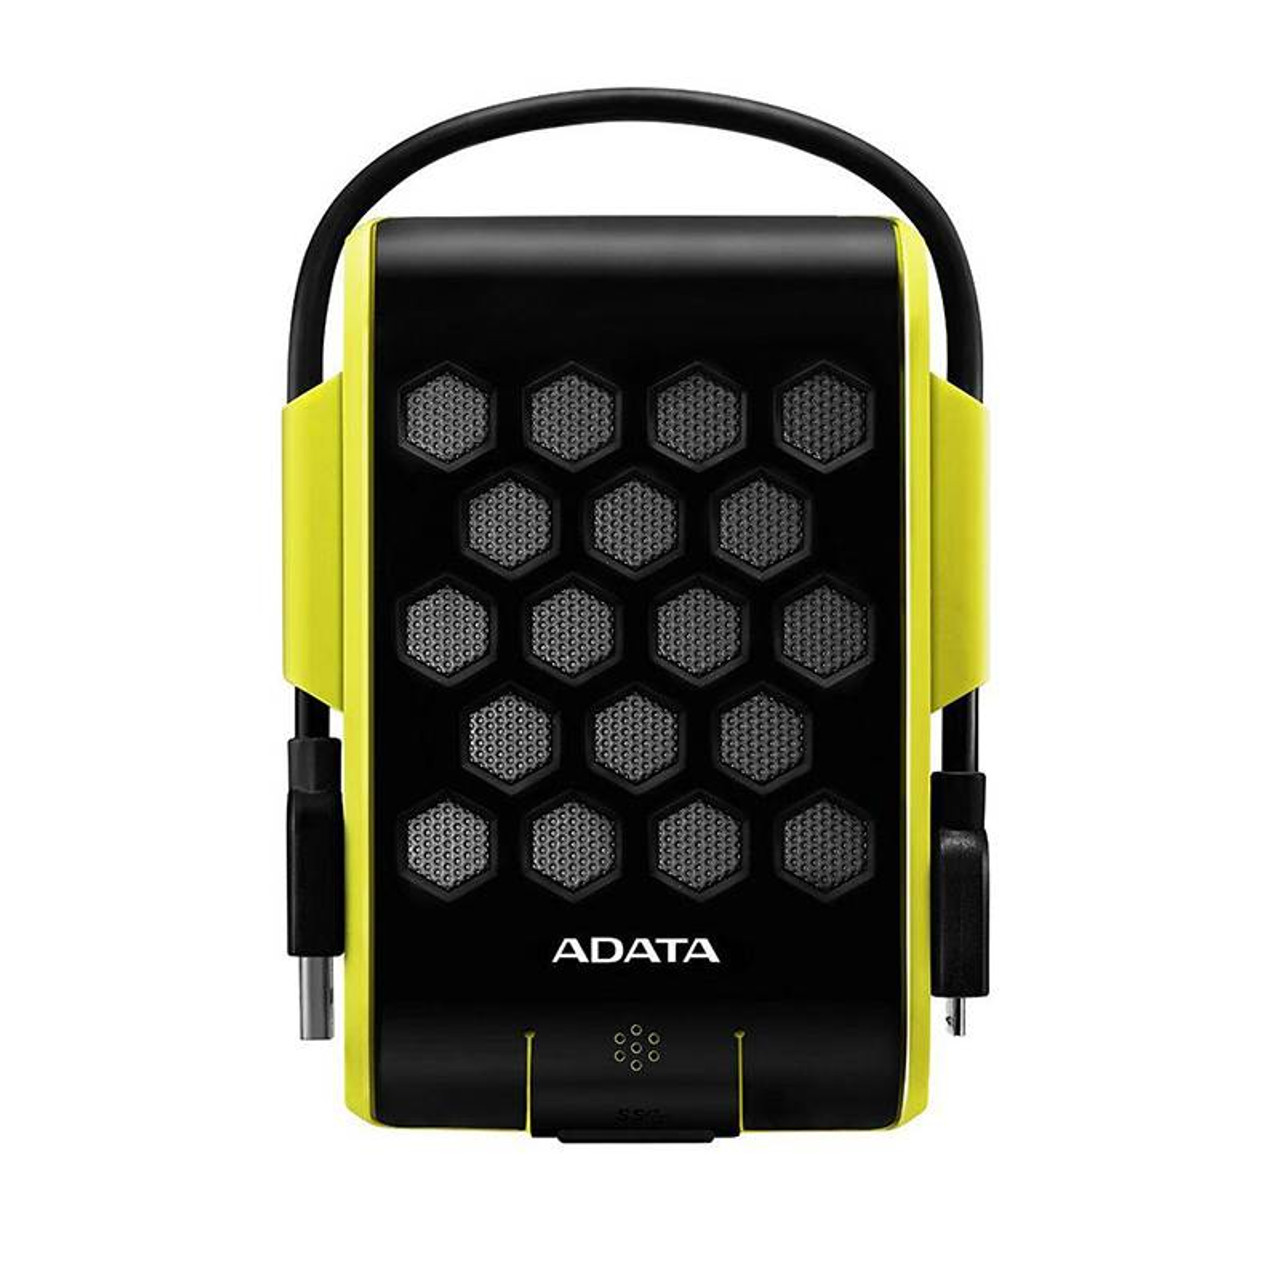 Image for Adata HD720 2TB USB 3.0 Military-grade Shockproof Portable External HDD - Green CX Computer Superstore